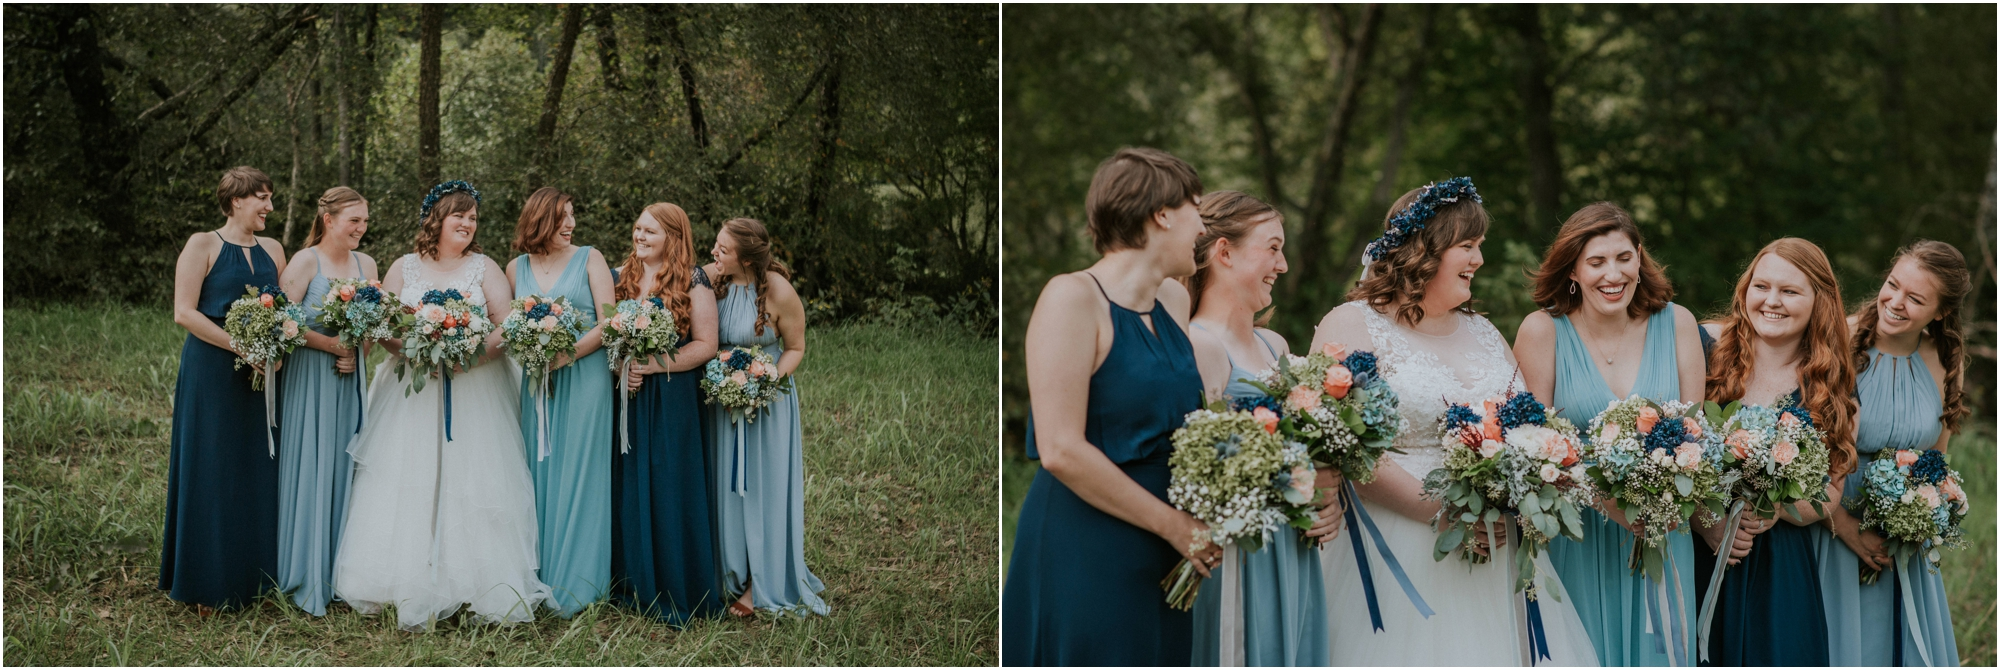 caryville-robbins-middle-tennessee-intimate-cozy-fall-navy-rustic-backyard-wedding_0054.jpg